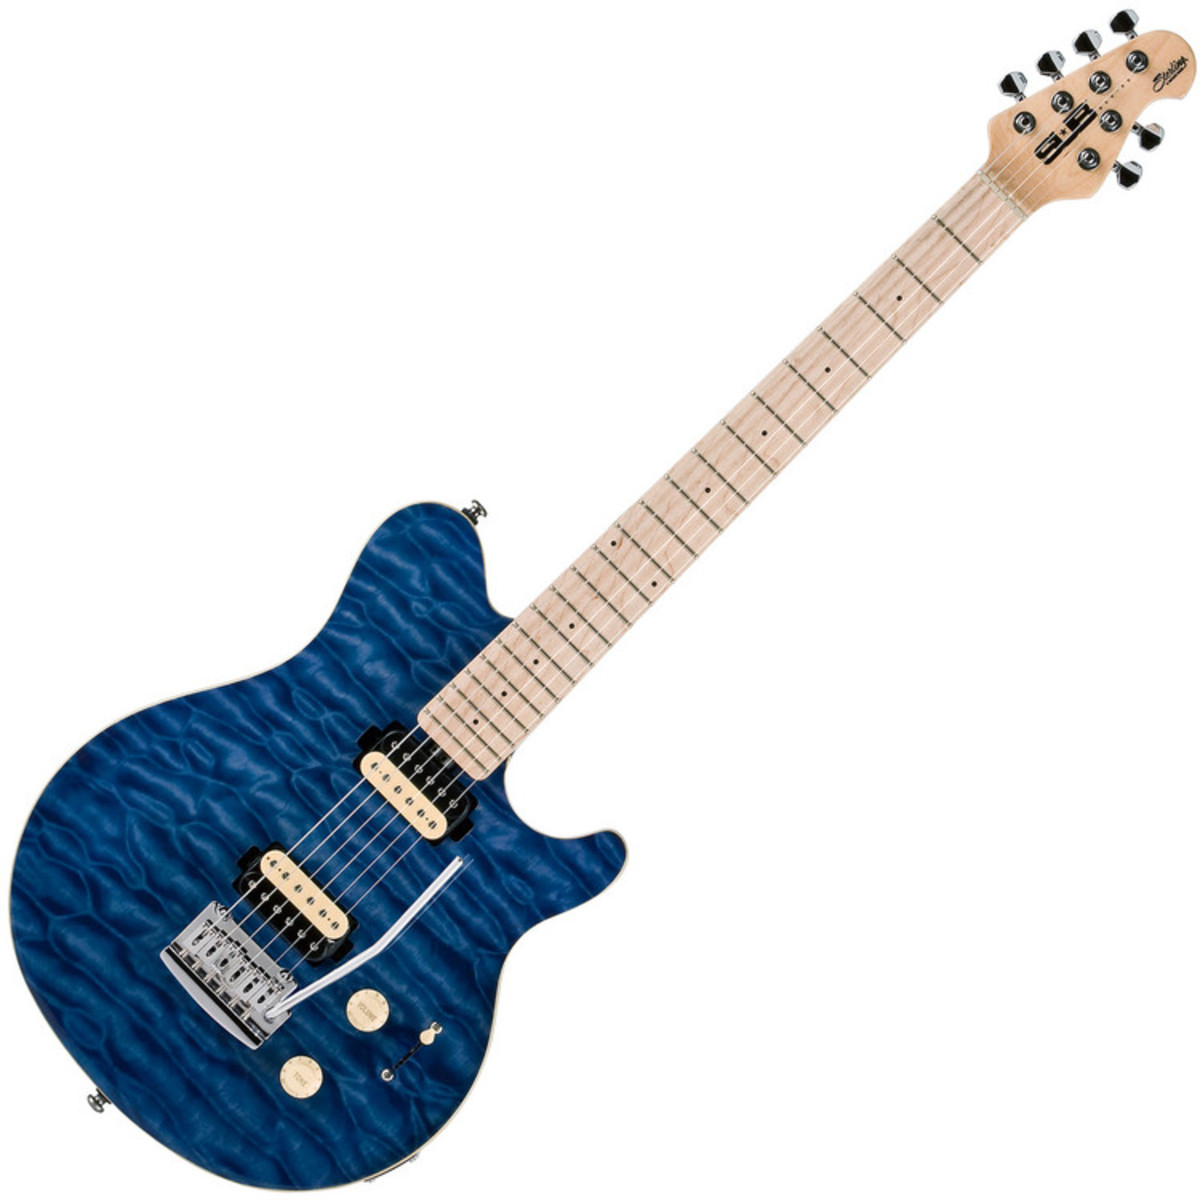 Sterling by music man sub ax3 mn transparent blue at for The sterling